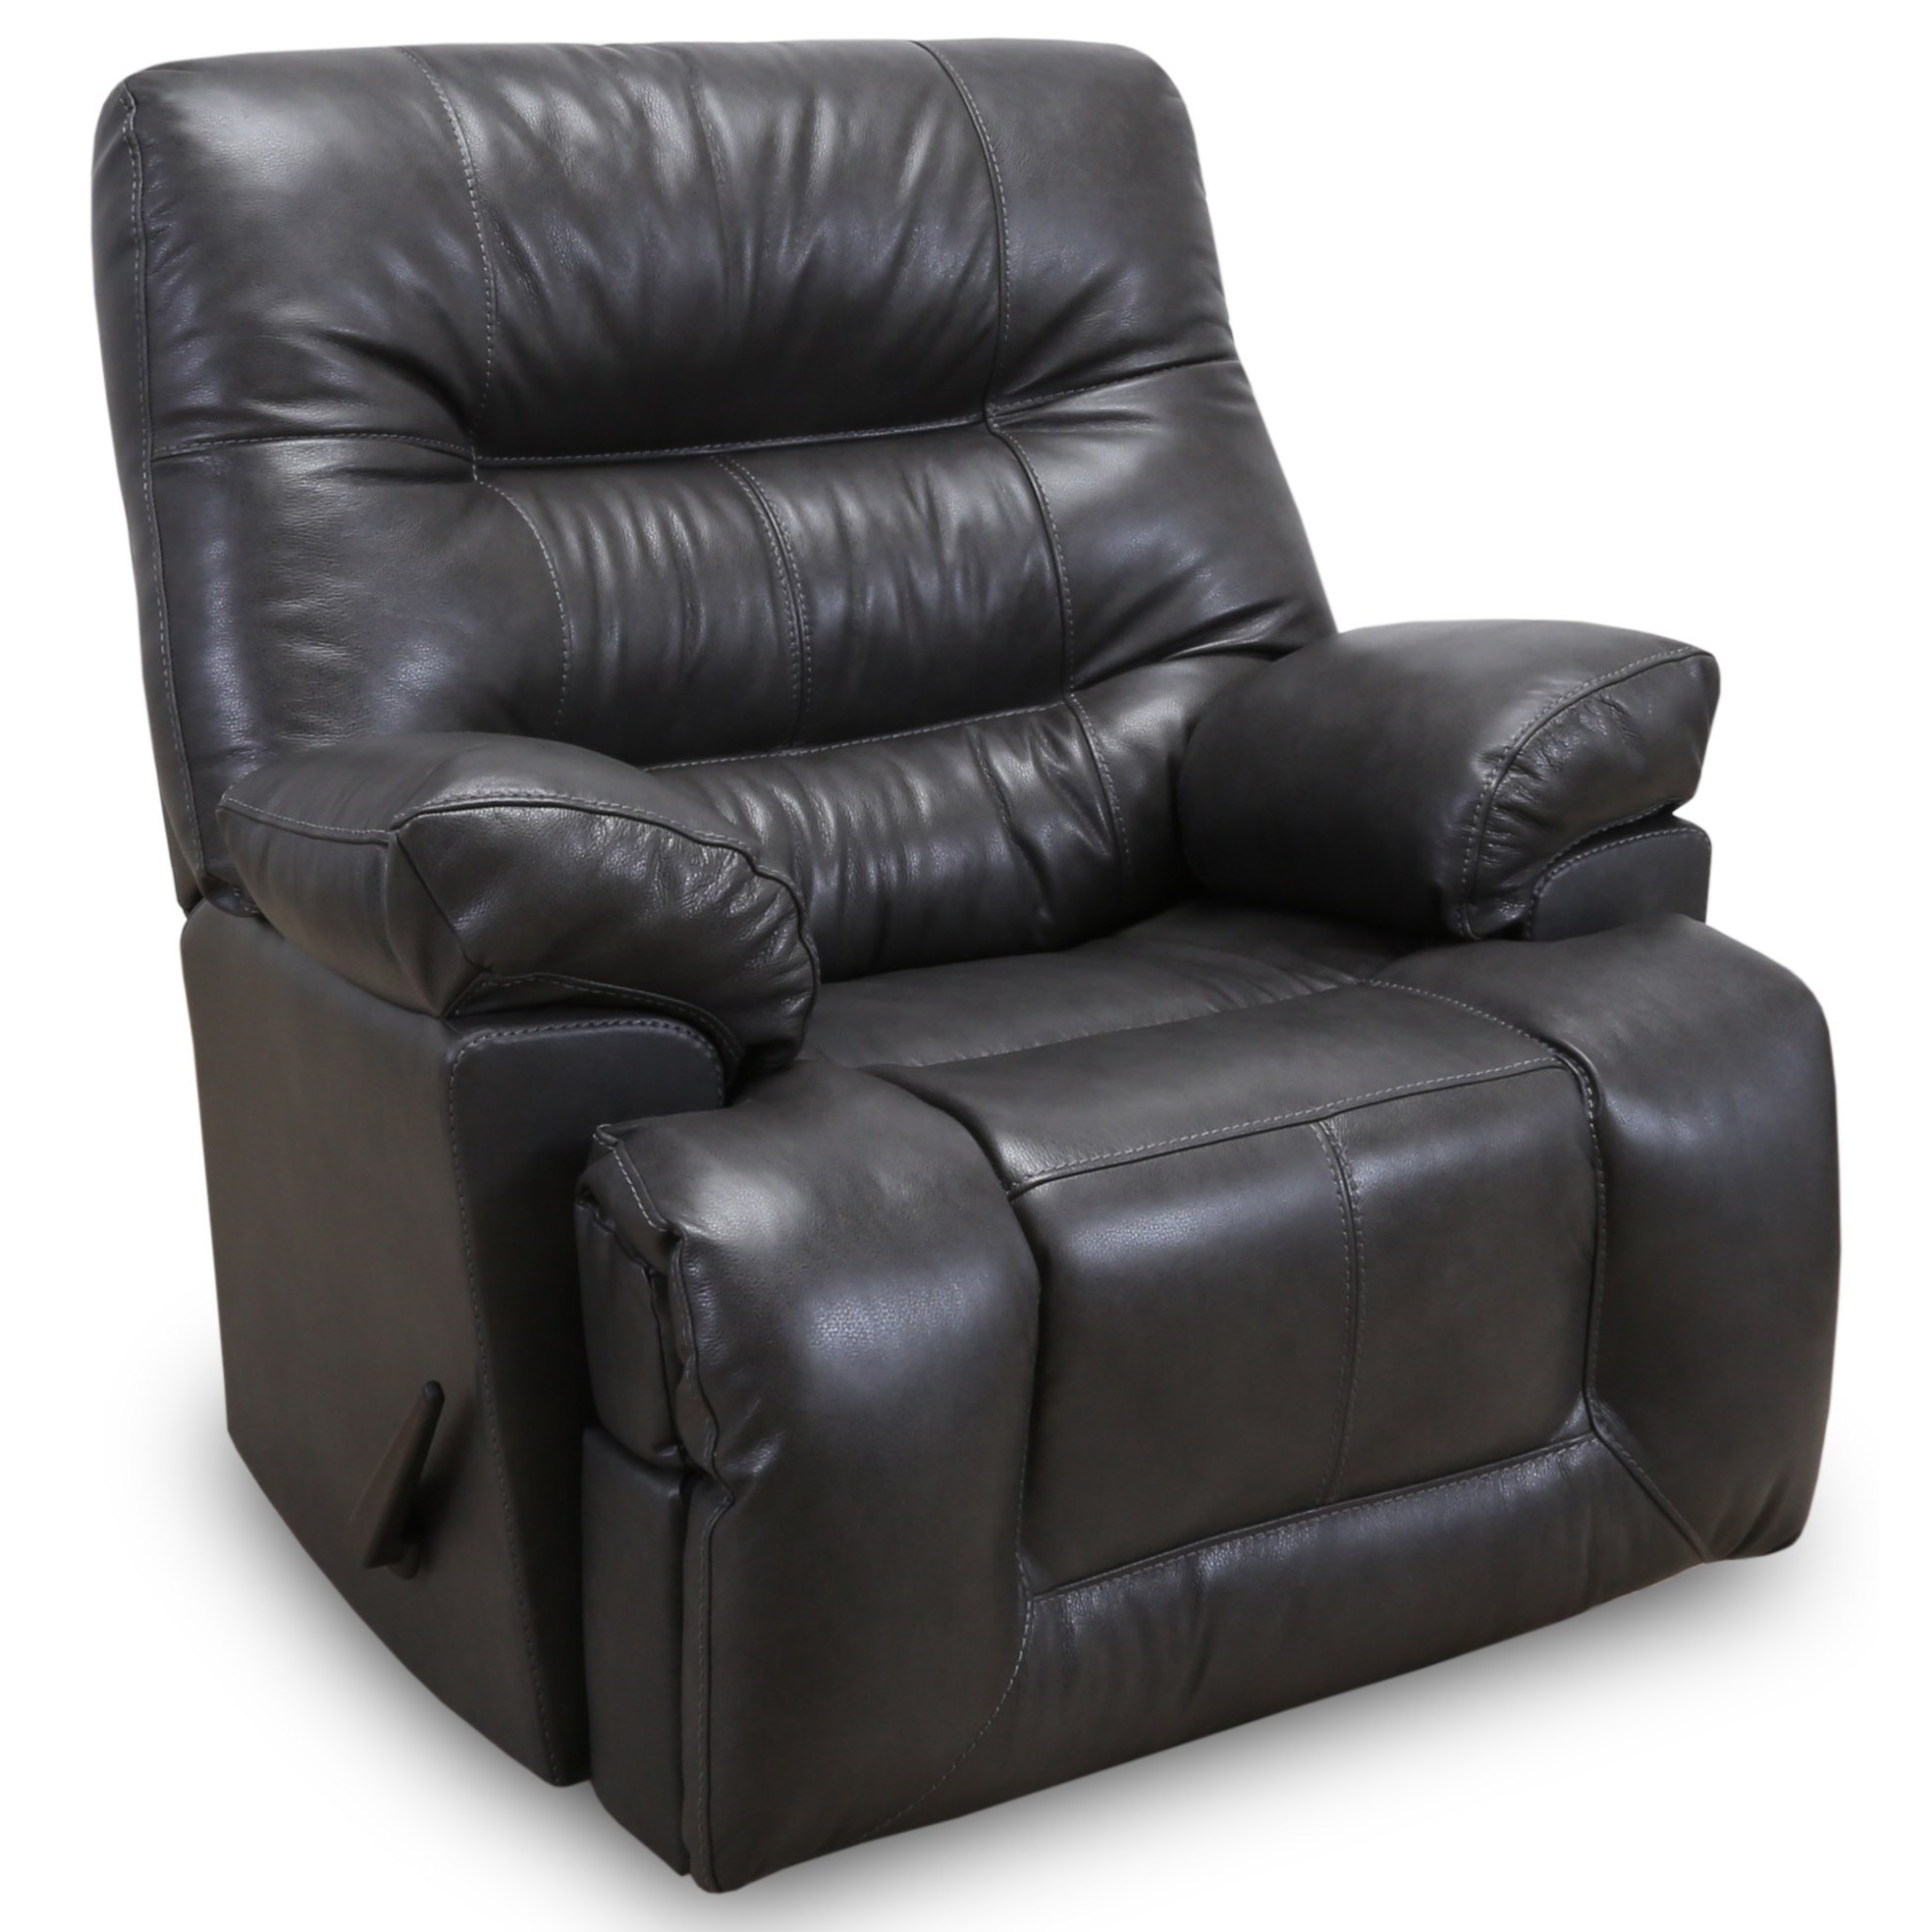 Boss Power Rocker Recliner with USB Port